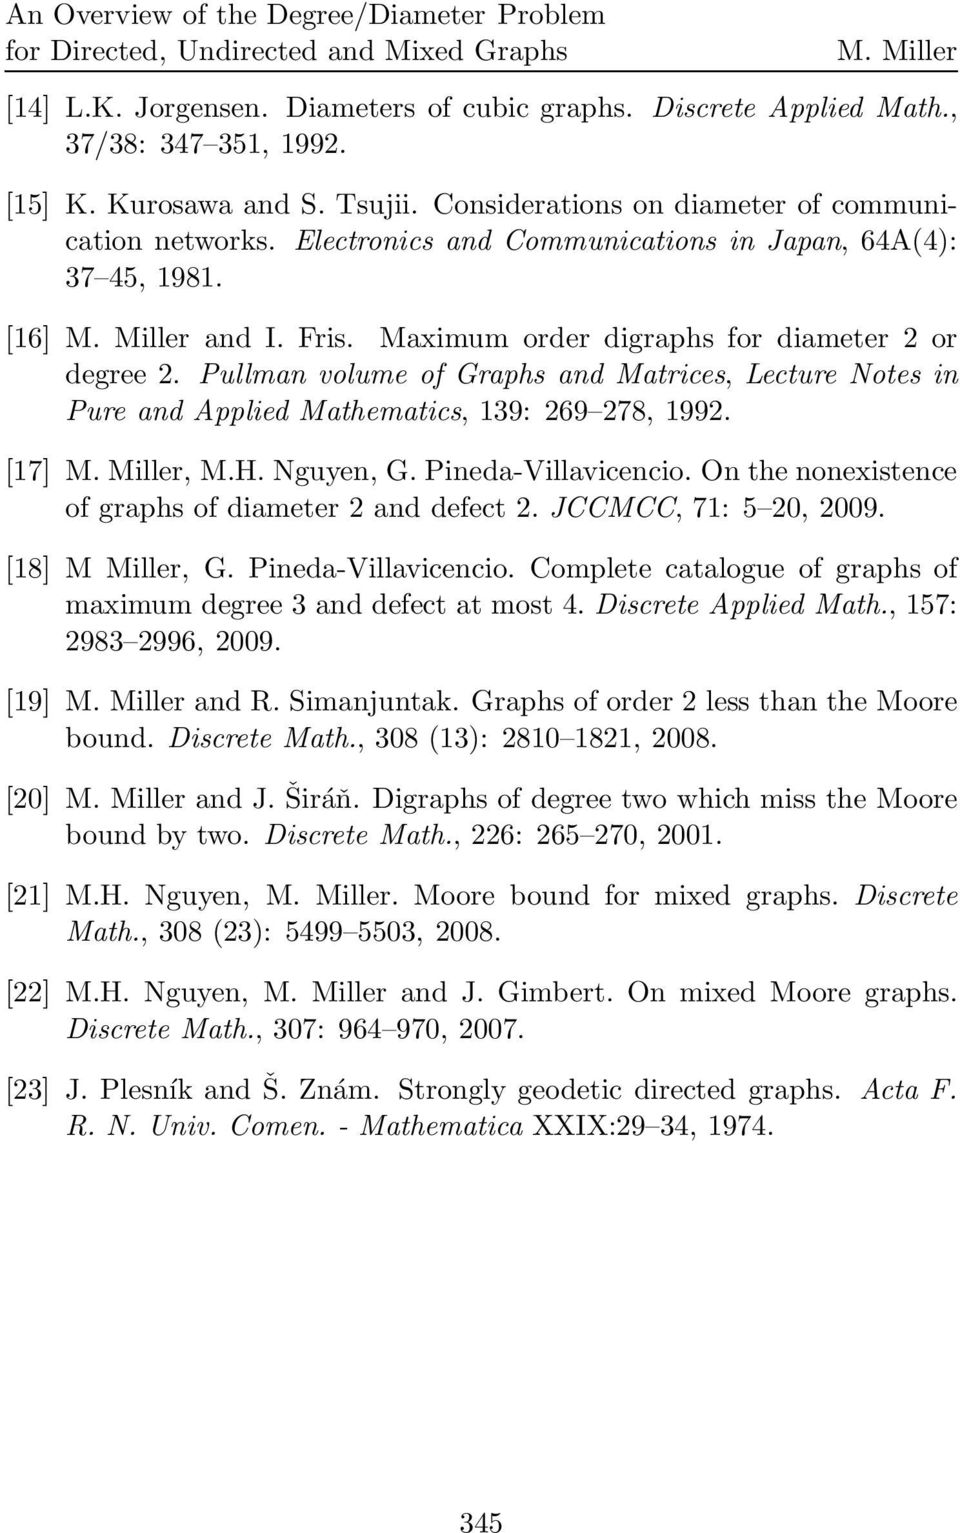 Pullman volume of Graphs and Matrices, Lecture Notes in Pure and Applied Mathematics, 139: 269 278, 1992. [17], M.H. Nguyen, G. Pineda-Villavicencio.